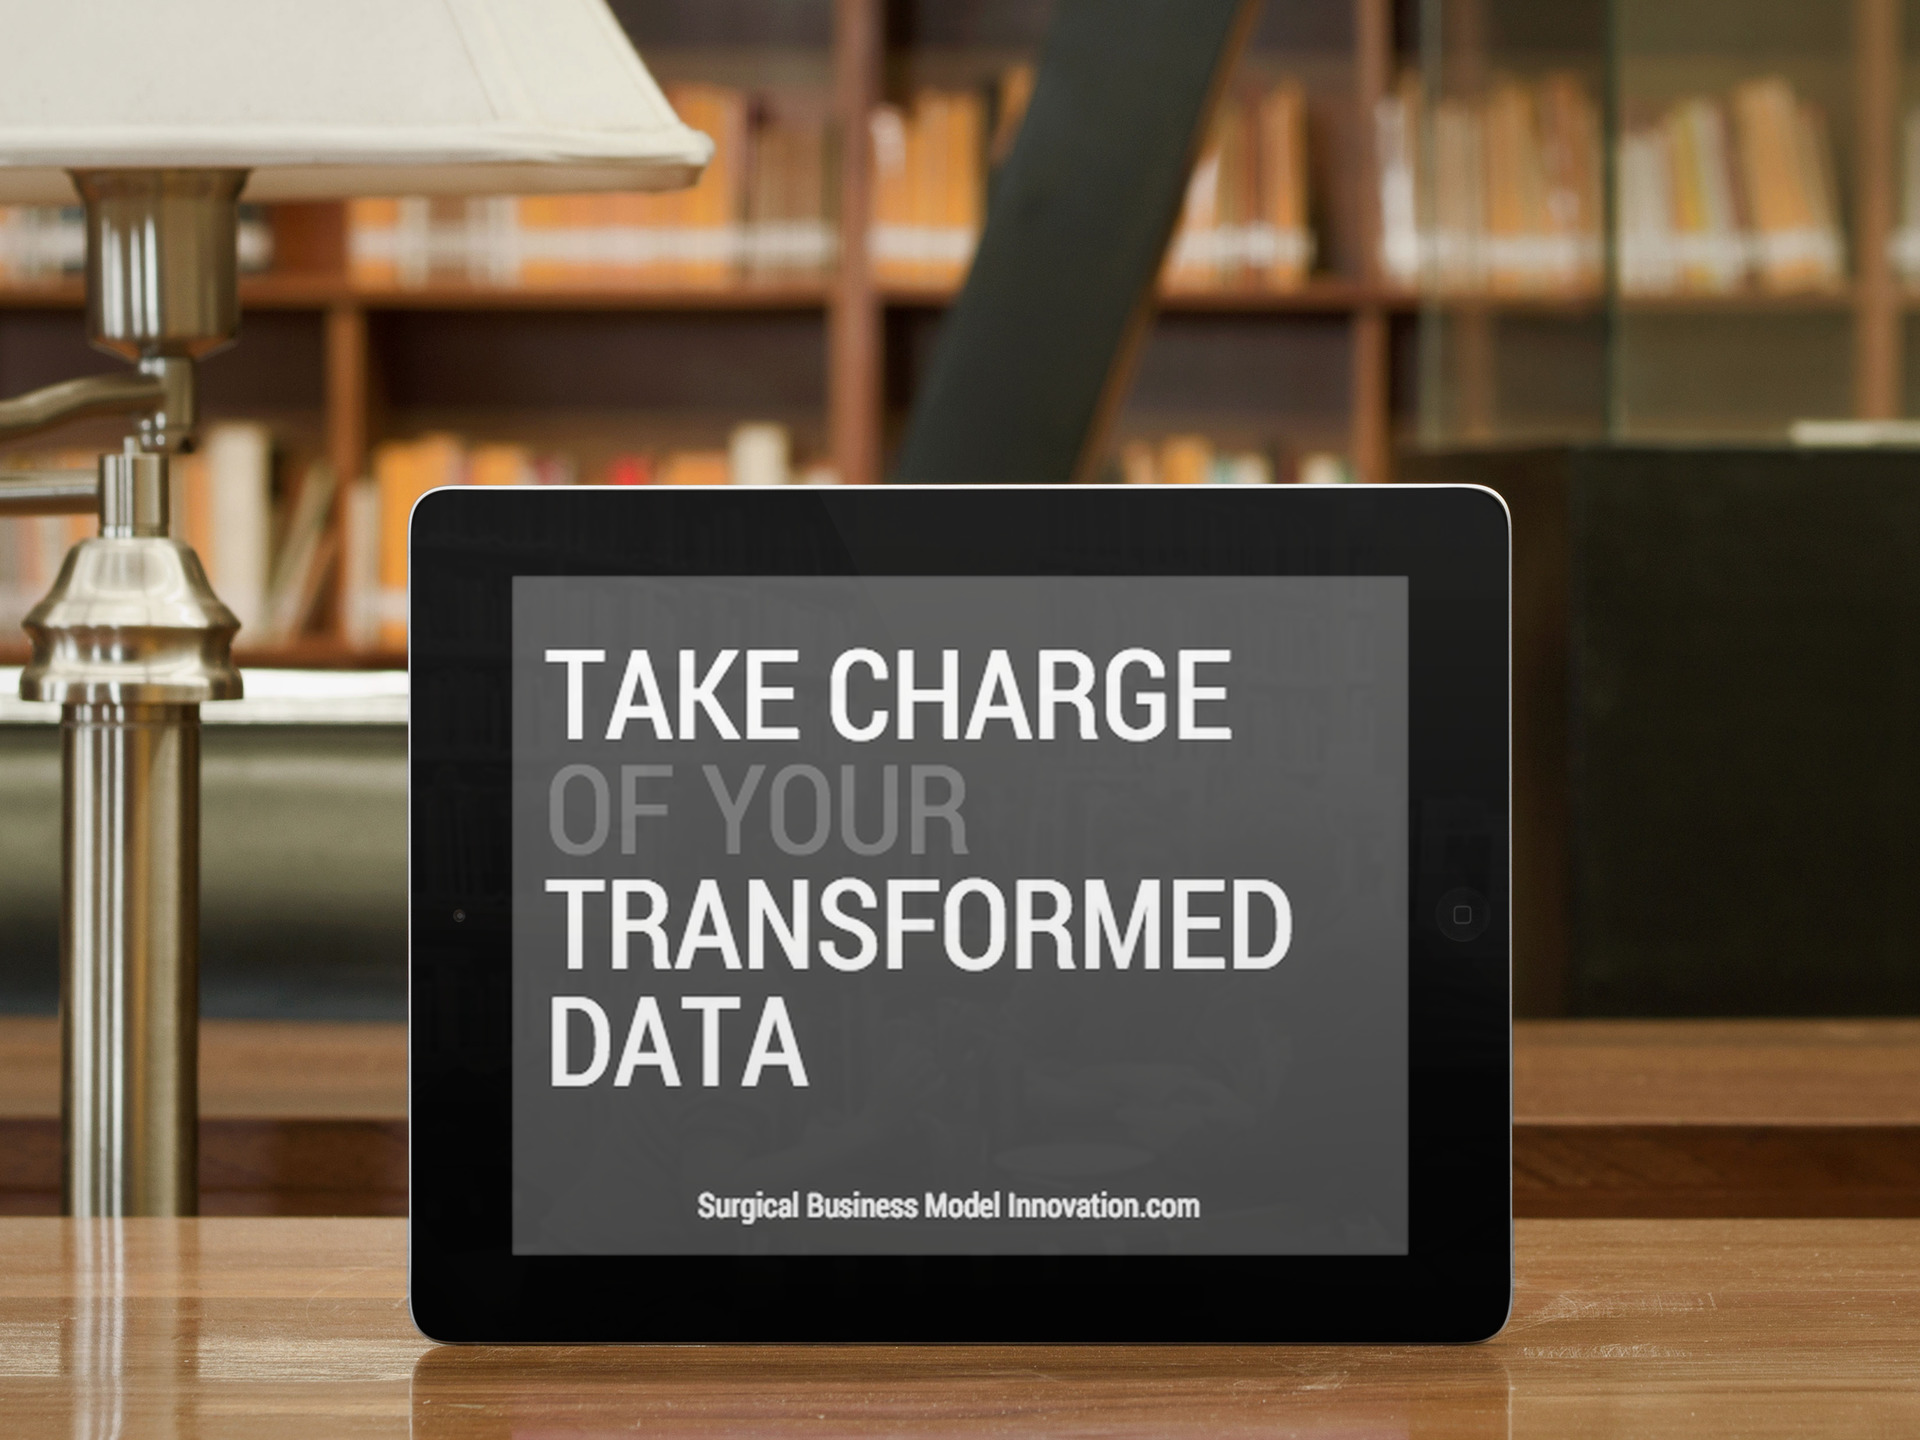 How To Take Charge Of Your Transformed Data